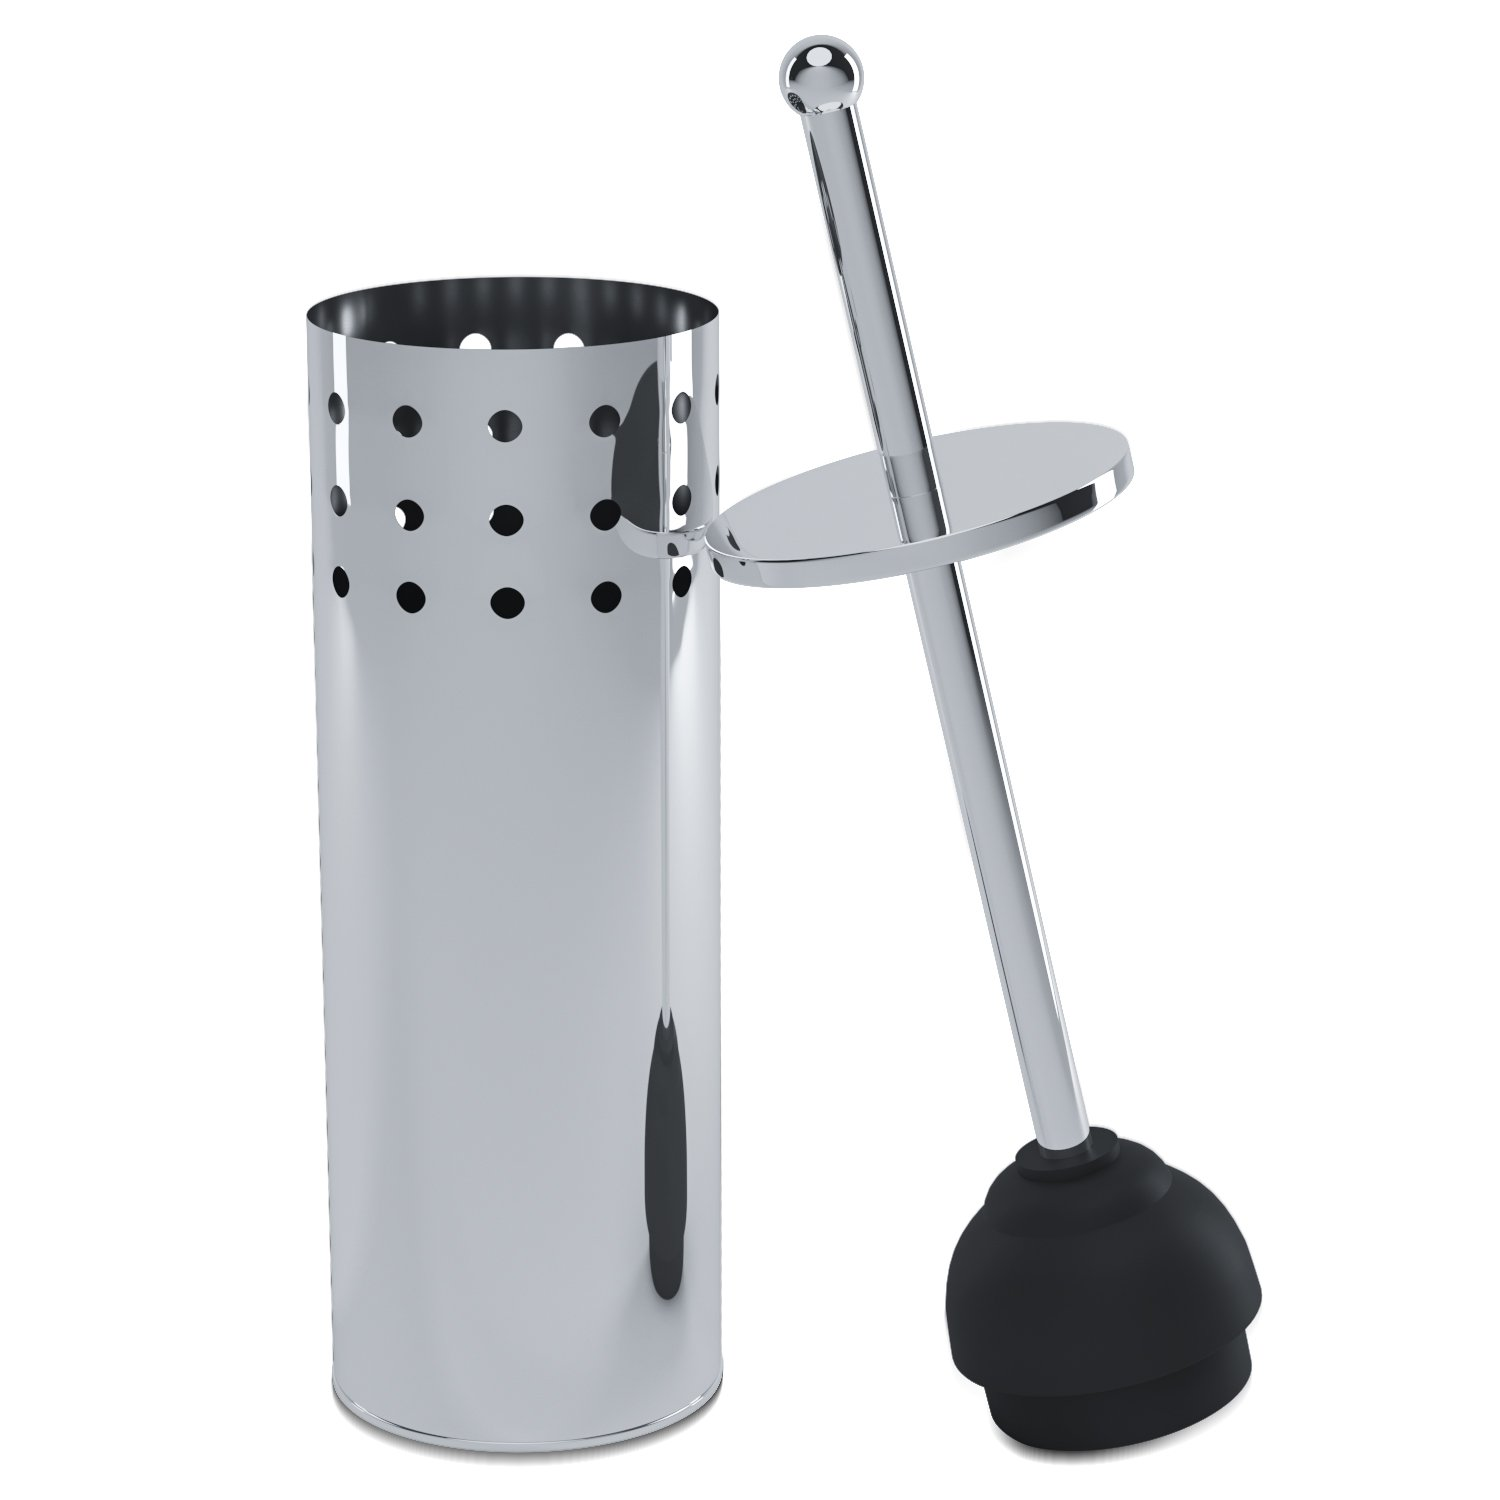 Home Intuition Chrome Vented Toilet Plunger and Canister Holder Drip Cup, 1 Pack by Home Intuition